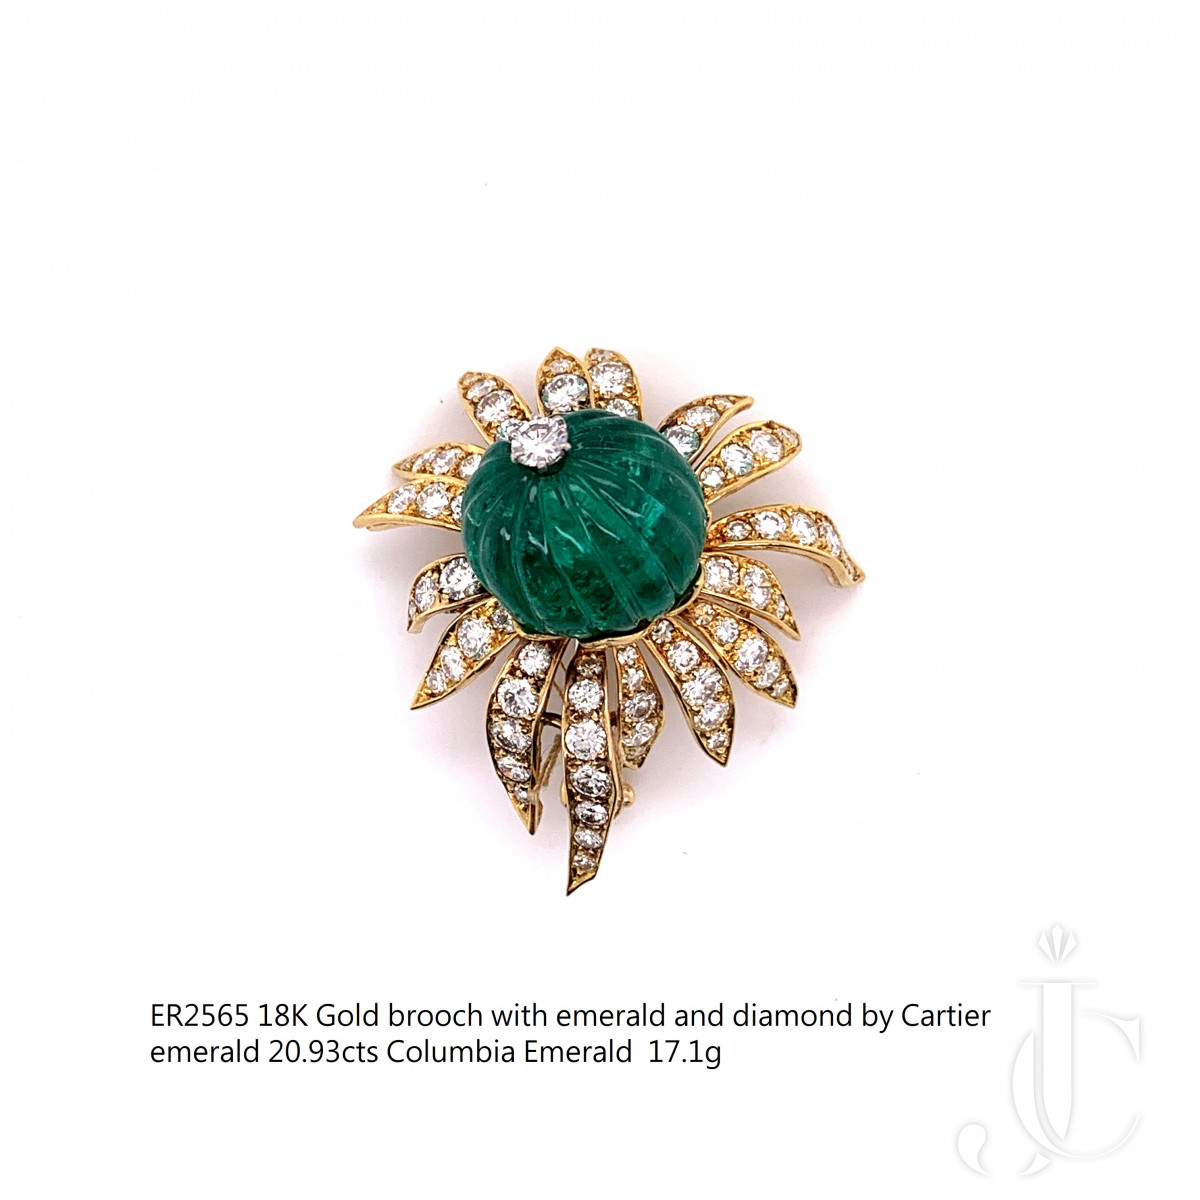 18k gold brooch with emerald and diamond by Cartier